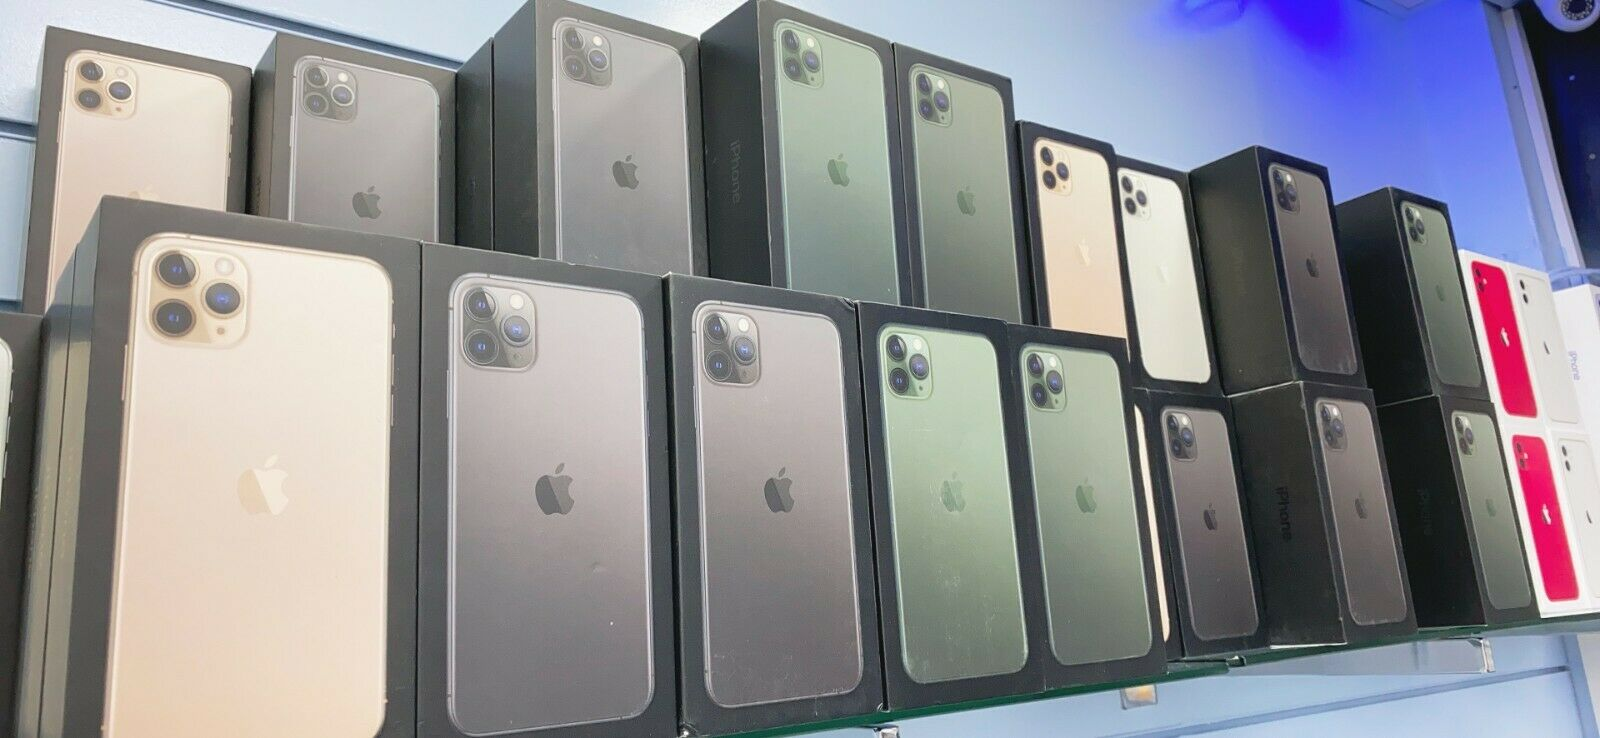 Apple iPhone 11 Pro 64GB iPhone 11 Pro Max 64GB